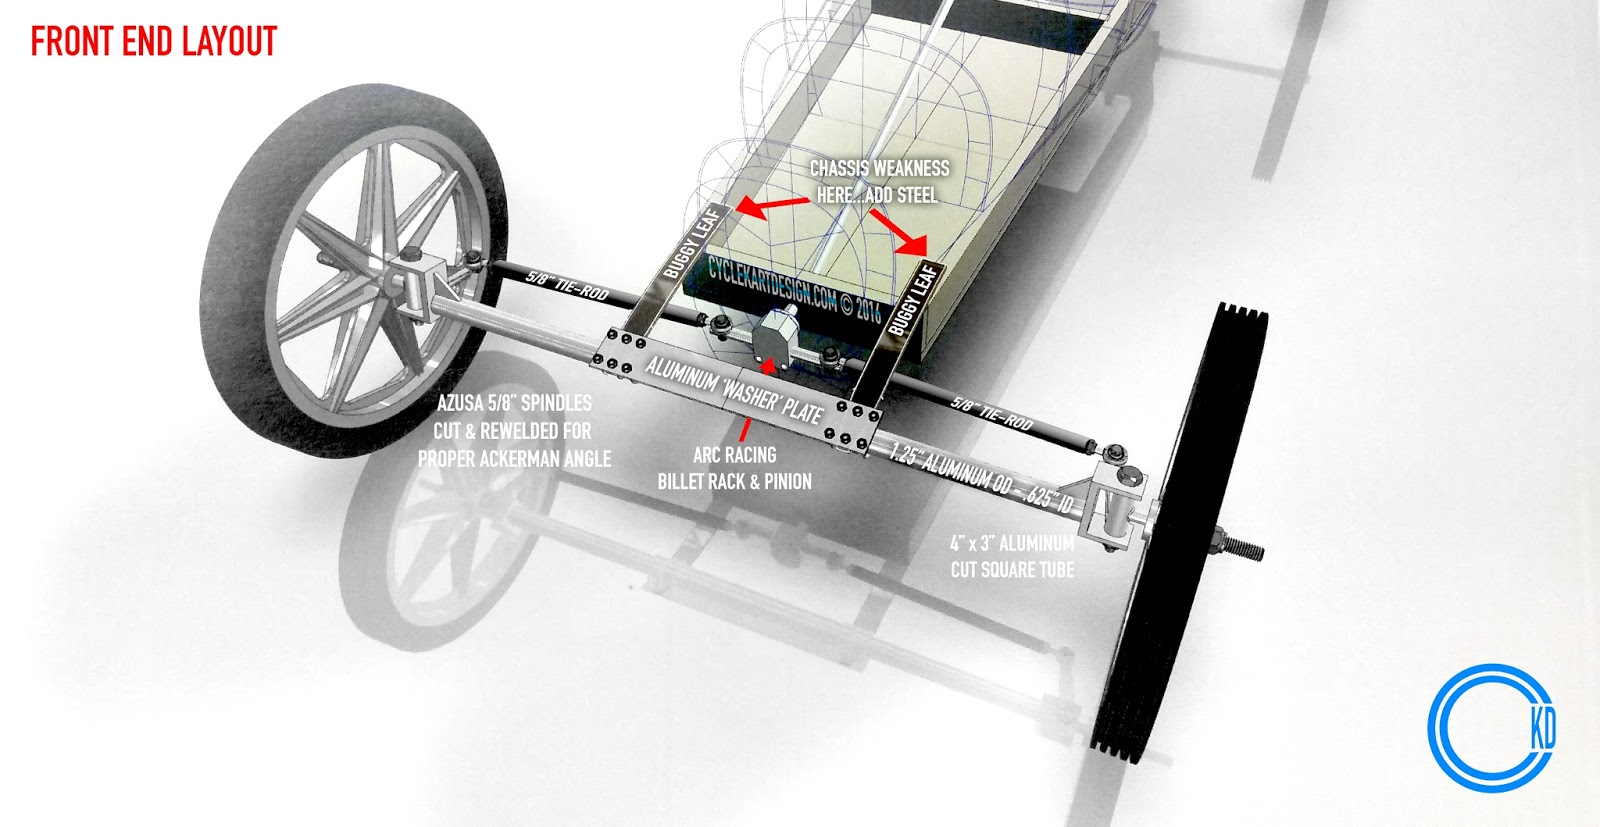 Cycle Kart Design: Front End